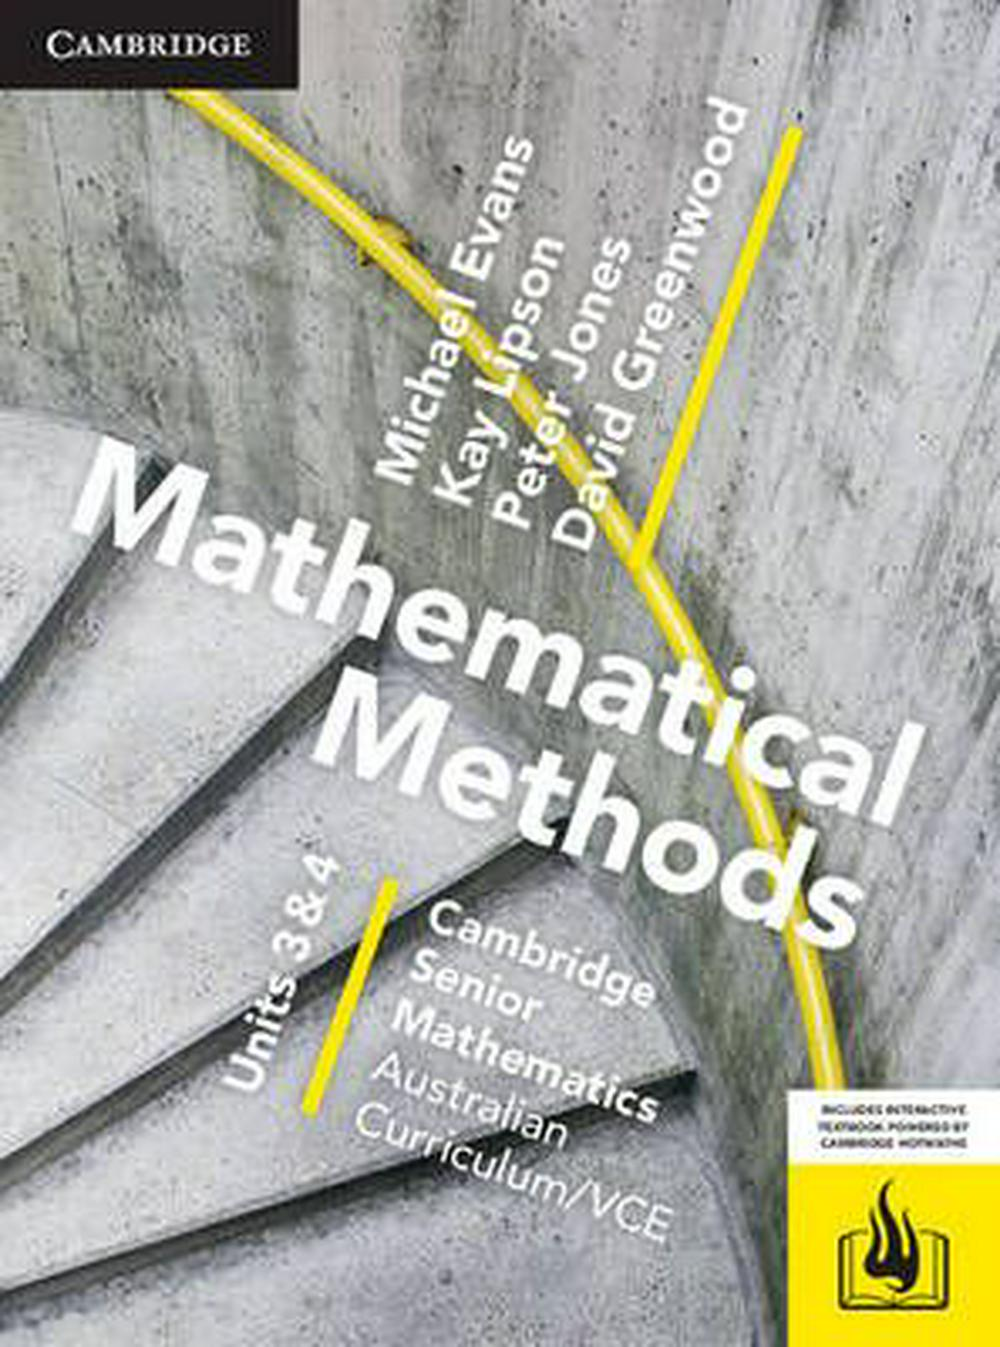 CSM VCE Mathematical Methods Units 3 and 4 Print Bundle (Textbook and Hotmaths) by Michael Evans,David Greenwood,Kay Lipson,Peter Jones, ISBN: 9781107567474